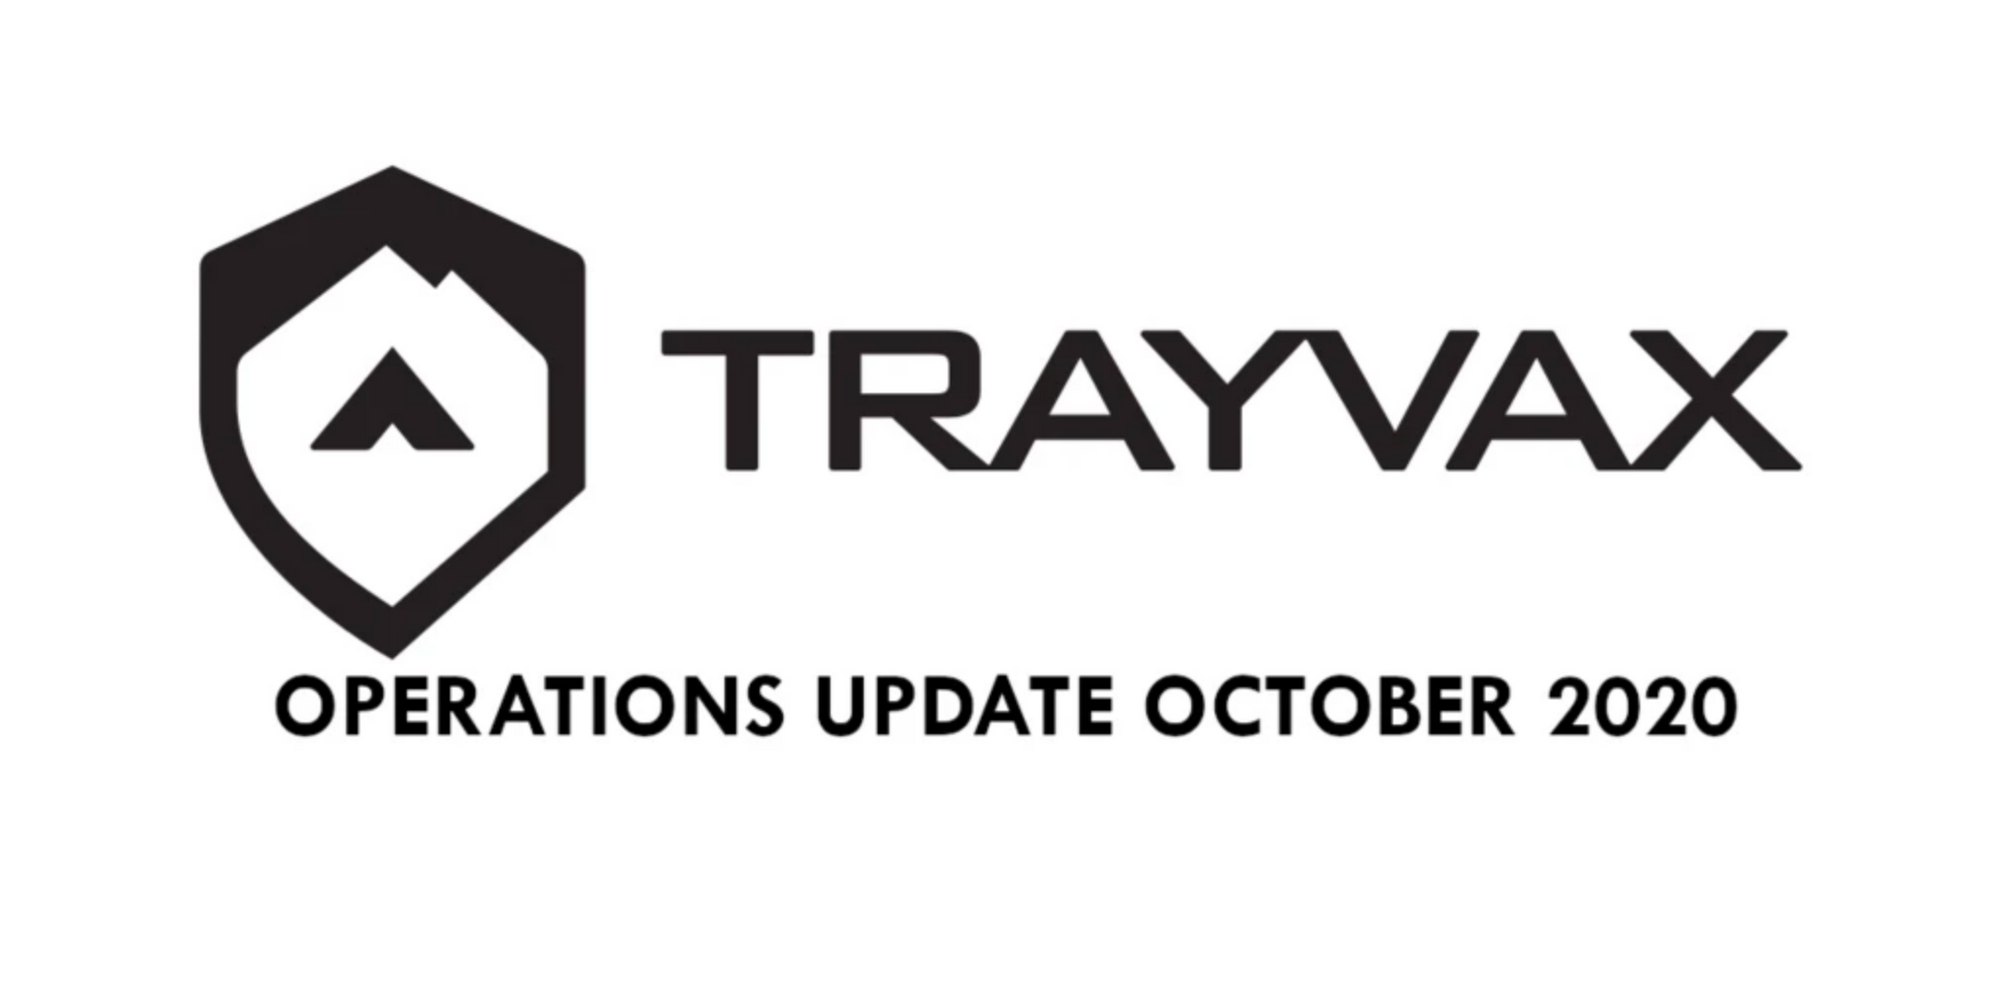 Operations Update: October 2020